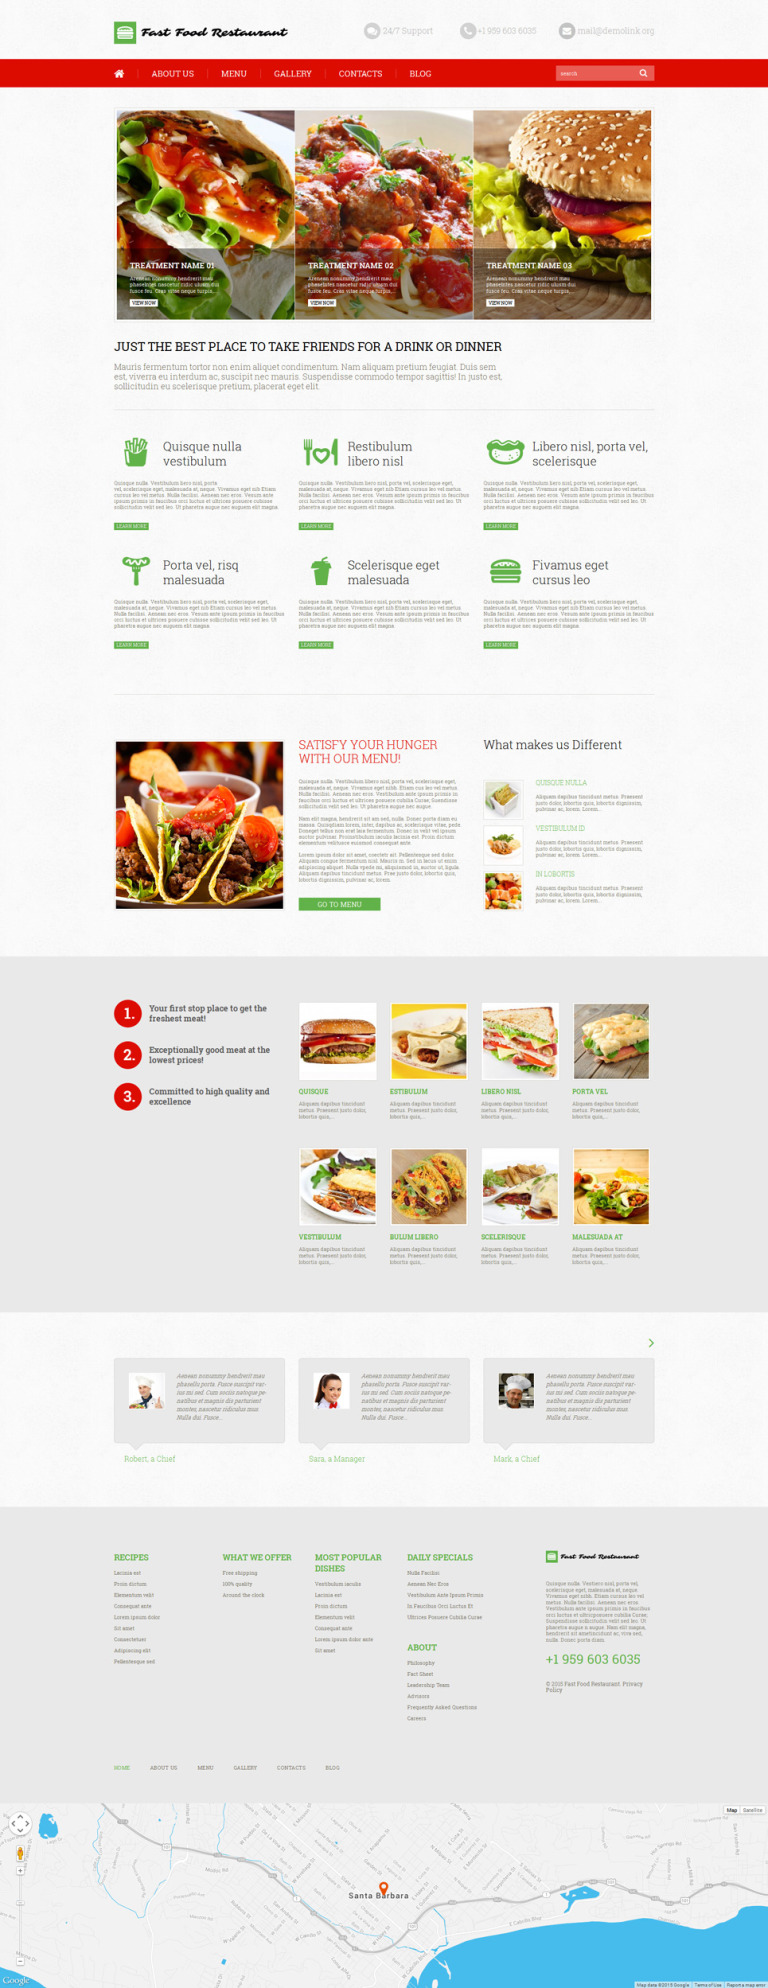 Fast Food Restaurant WordPress Theme New Screenshots BIG